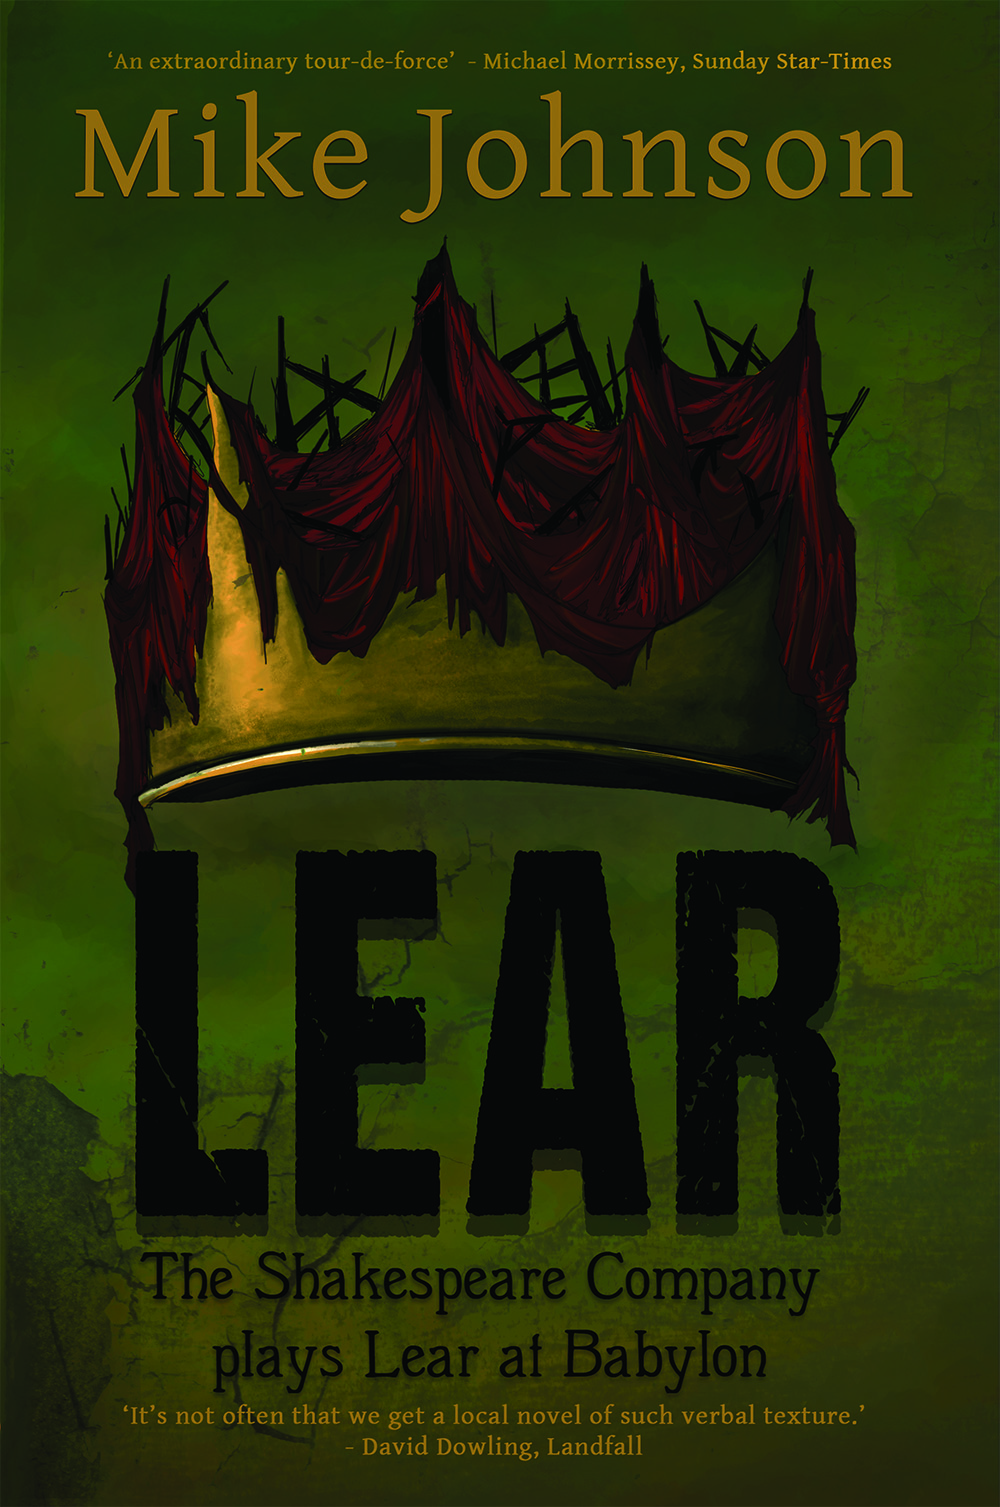 Lear : The Shakespeare co..., a forgotten classic of New Zealand literature, published in 1986.